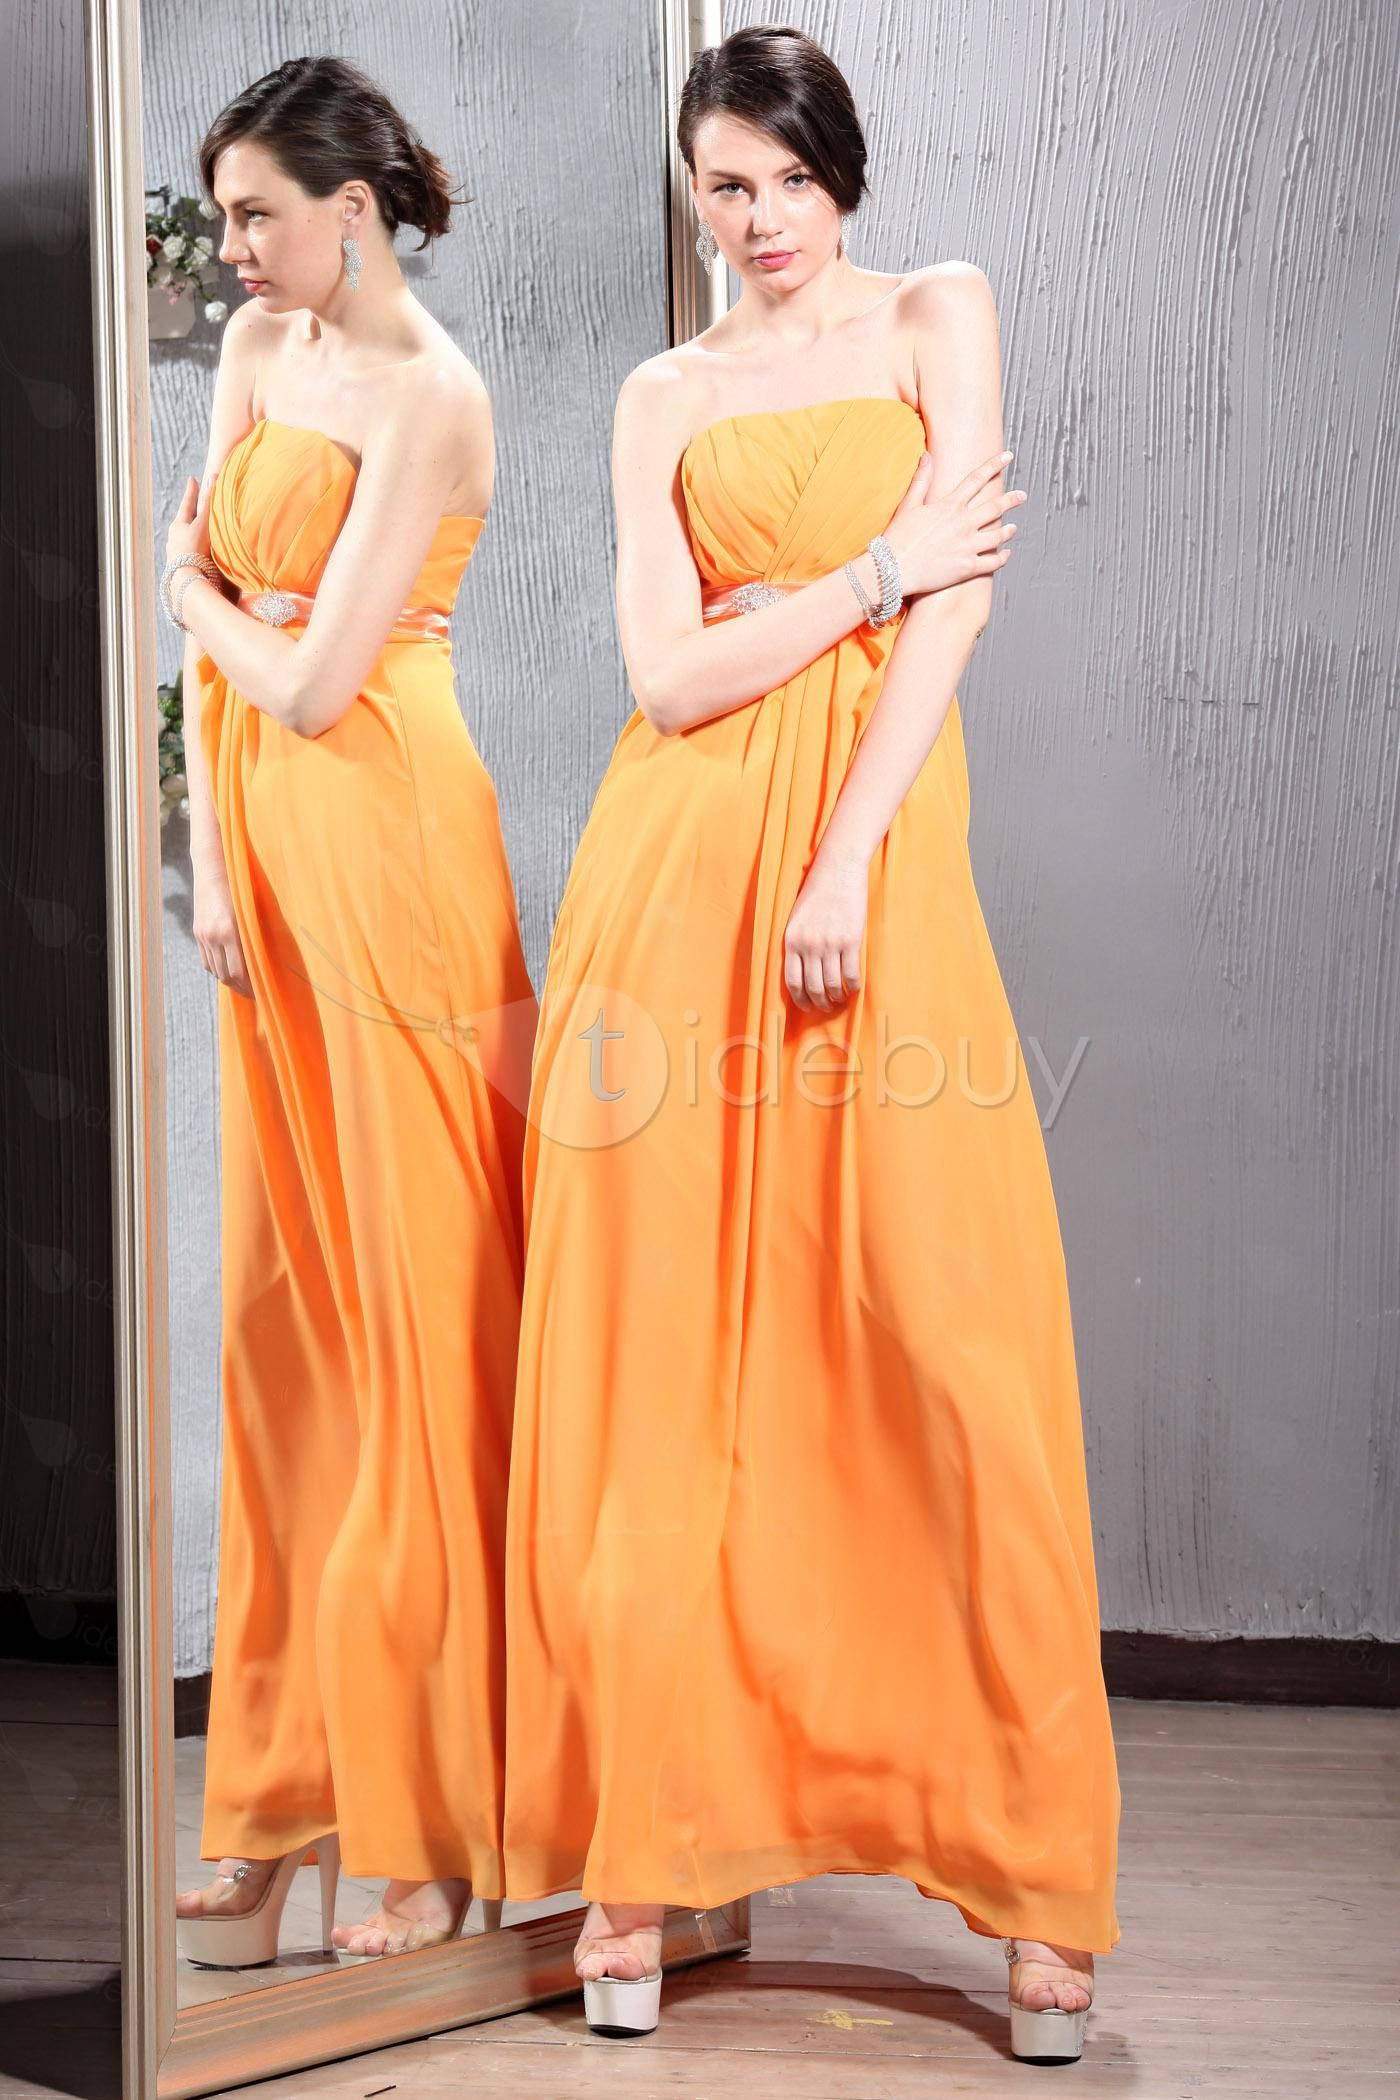 Concise Crystal Ruched A-Line Strapless Floor-length Luba's Bridesmaid Dresses (Free Shipping)   US$103.69